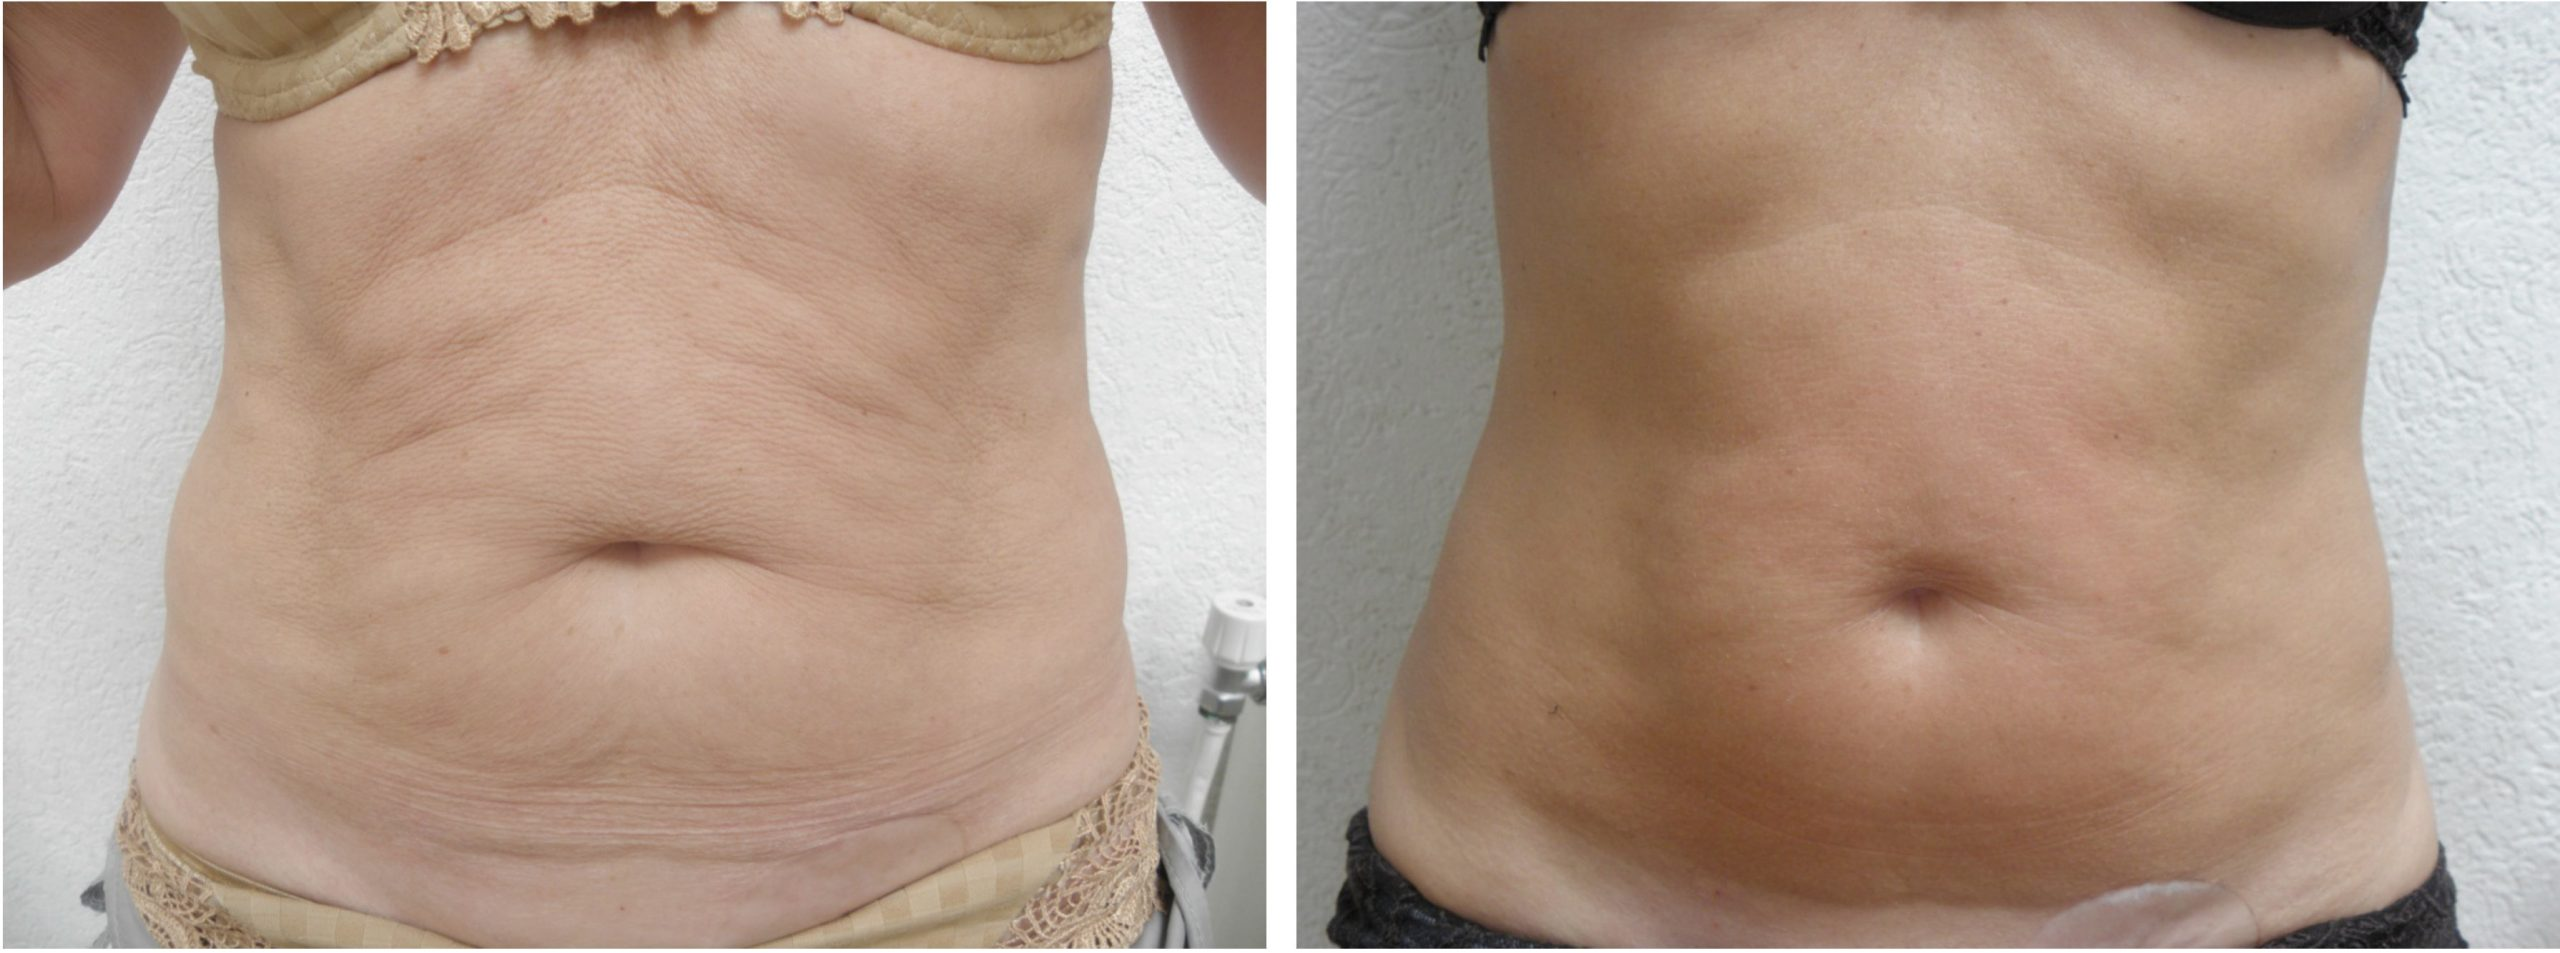 Intensif Microneedling with Radio Frequency Before and After 5